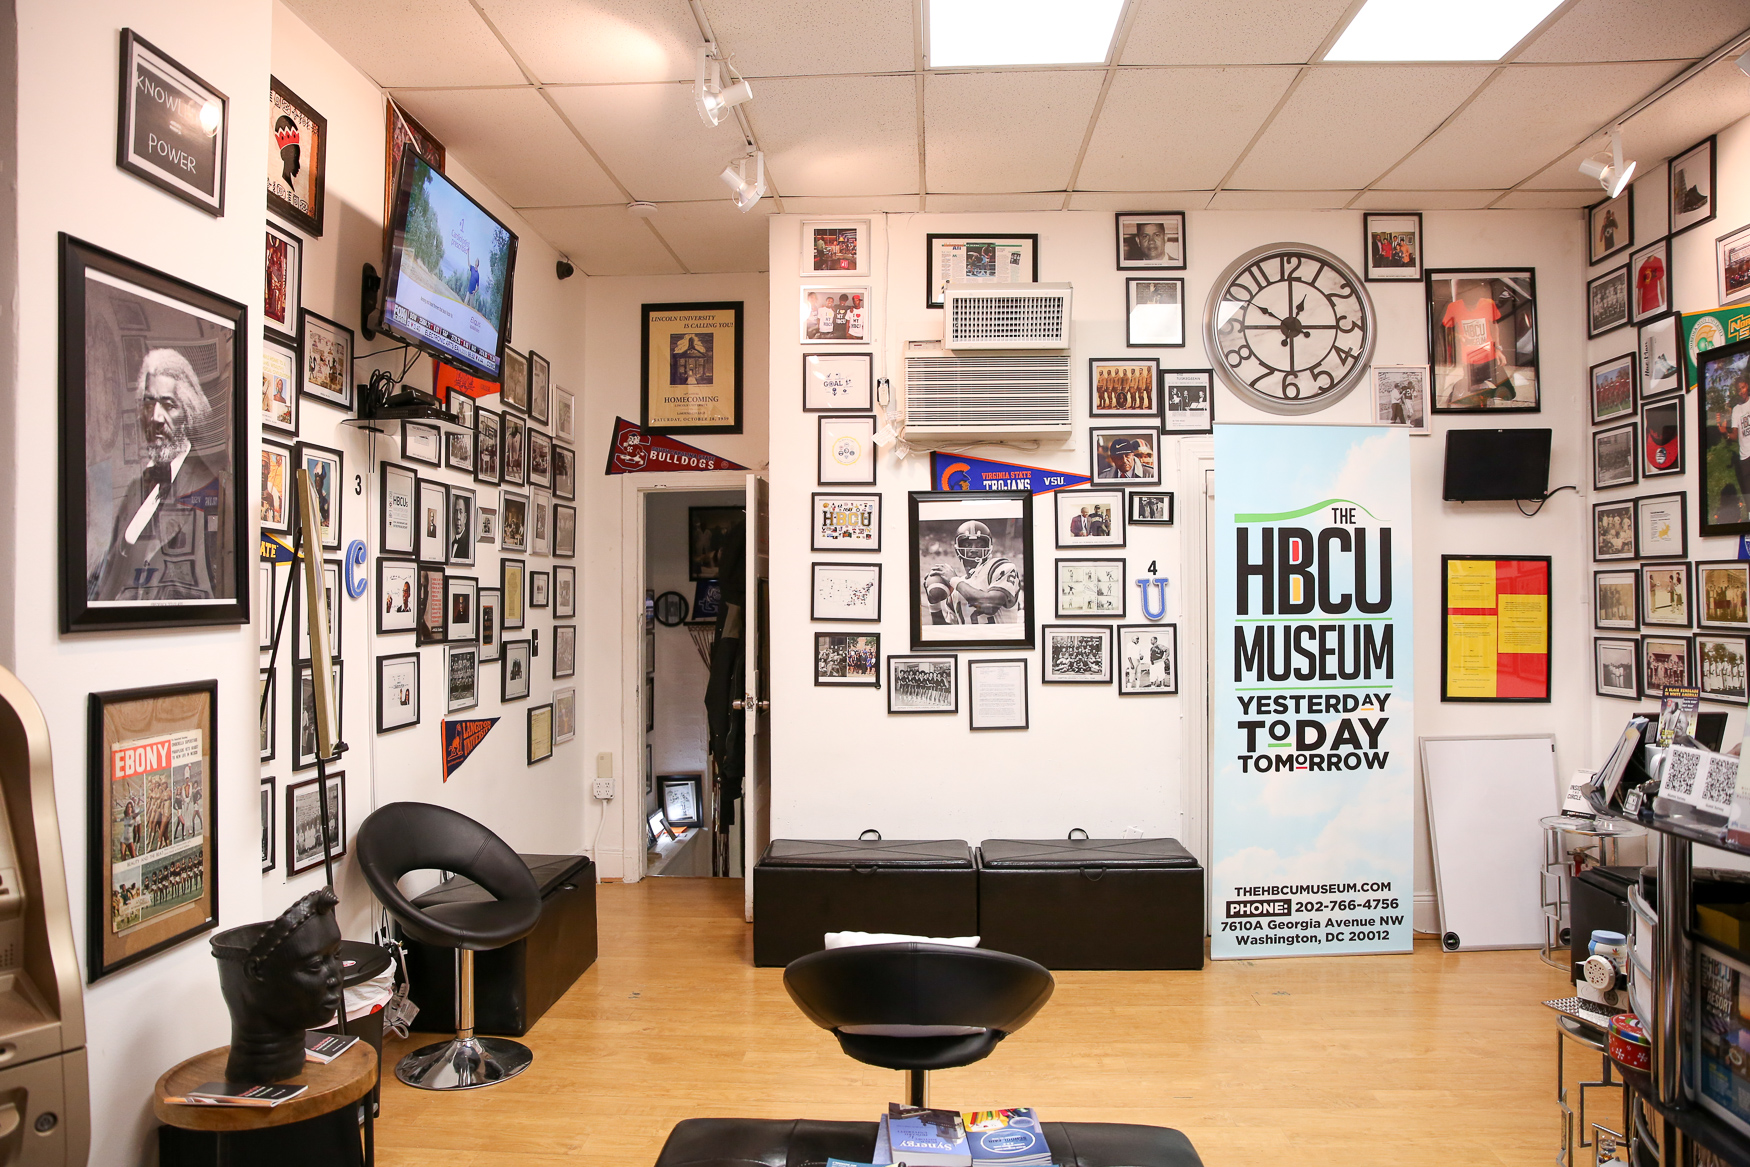 The HBCU Museum (7610 Georgia Ave NW, Washington, DC) was launched less than a year ago, but this Petworth storefront has a wealth of information about HBCUs - Historically Black Colleges and Universities.{ }